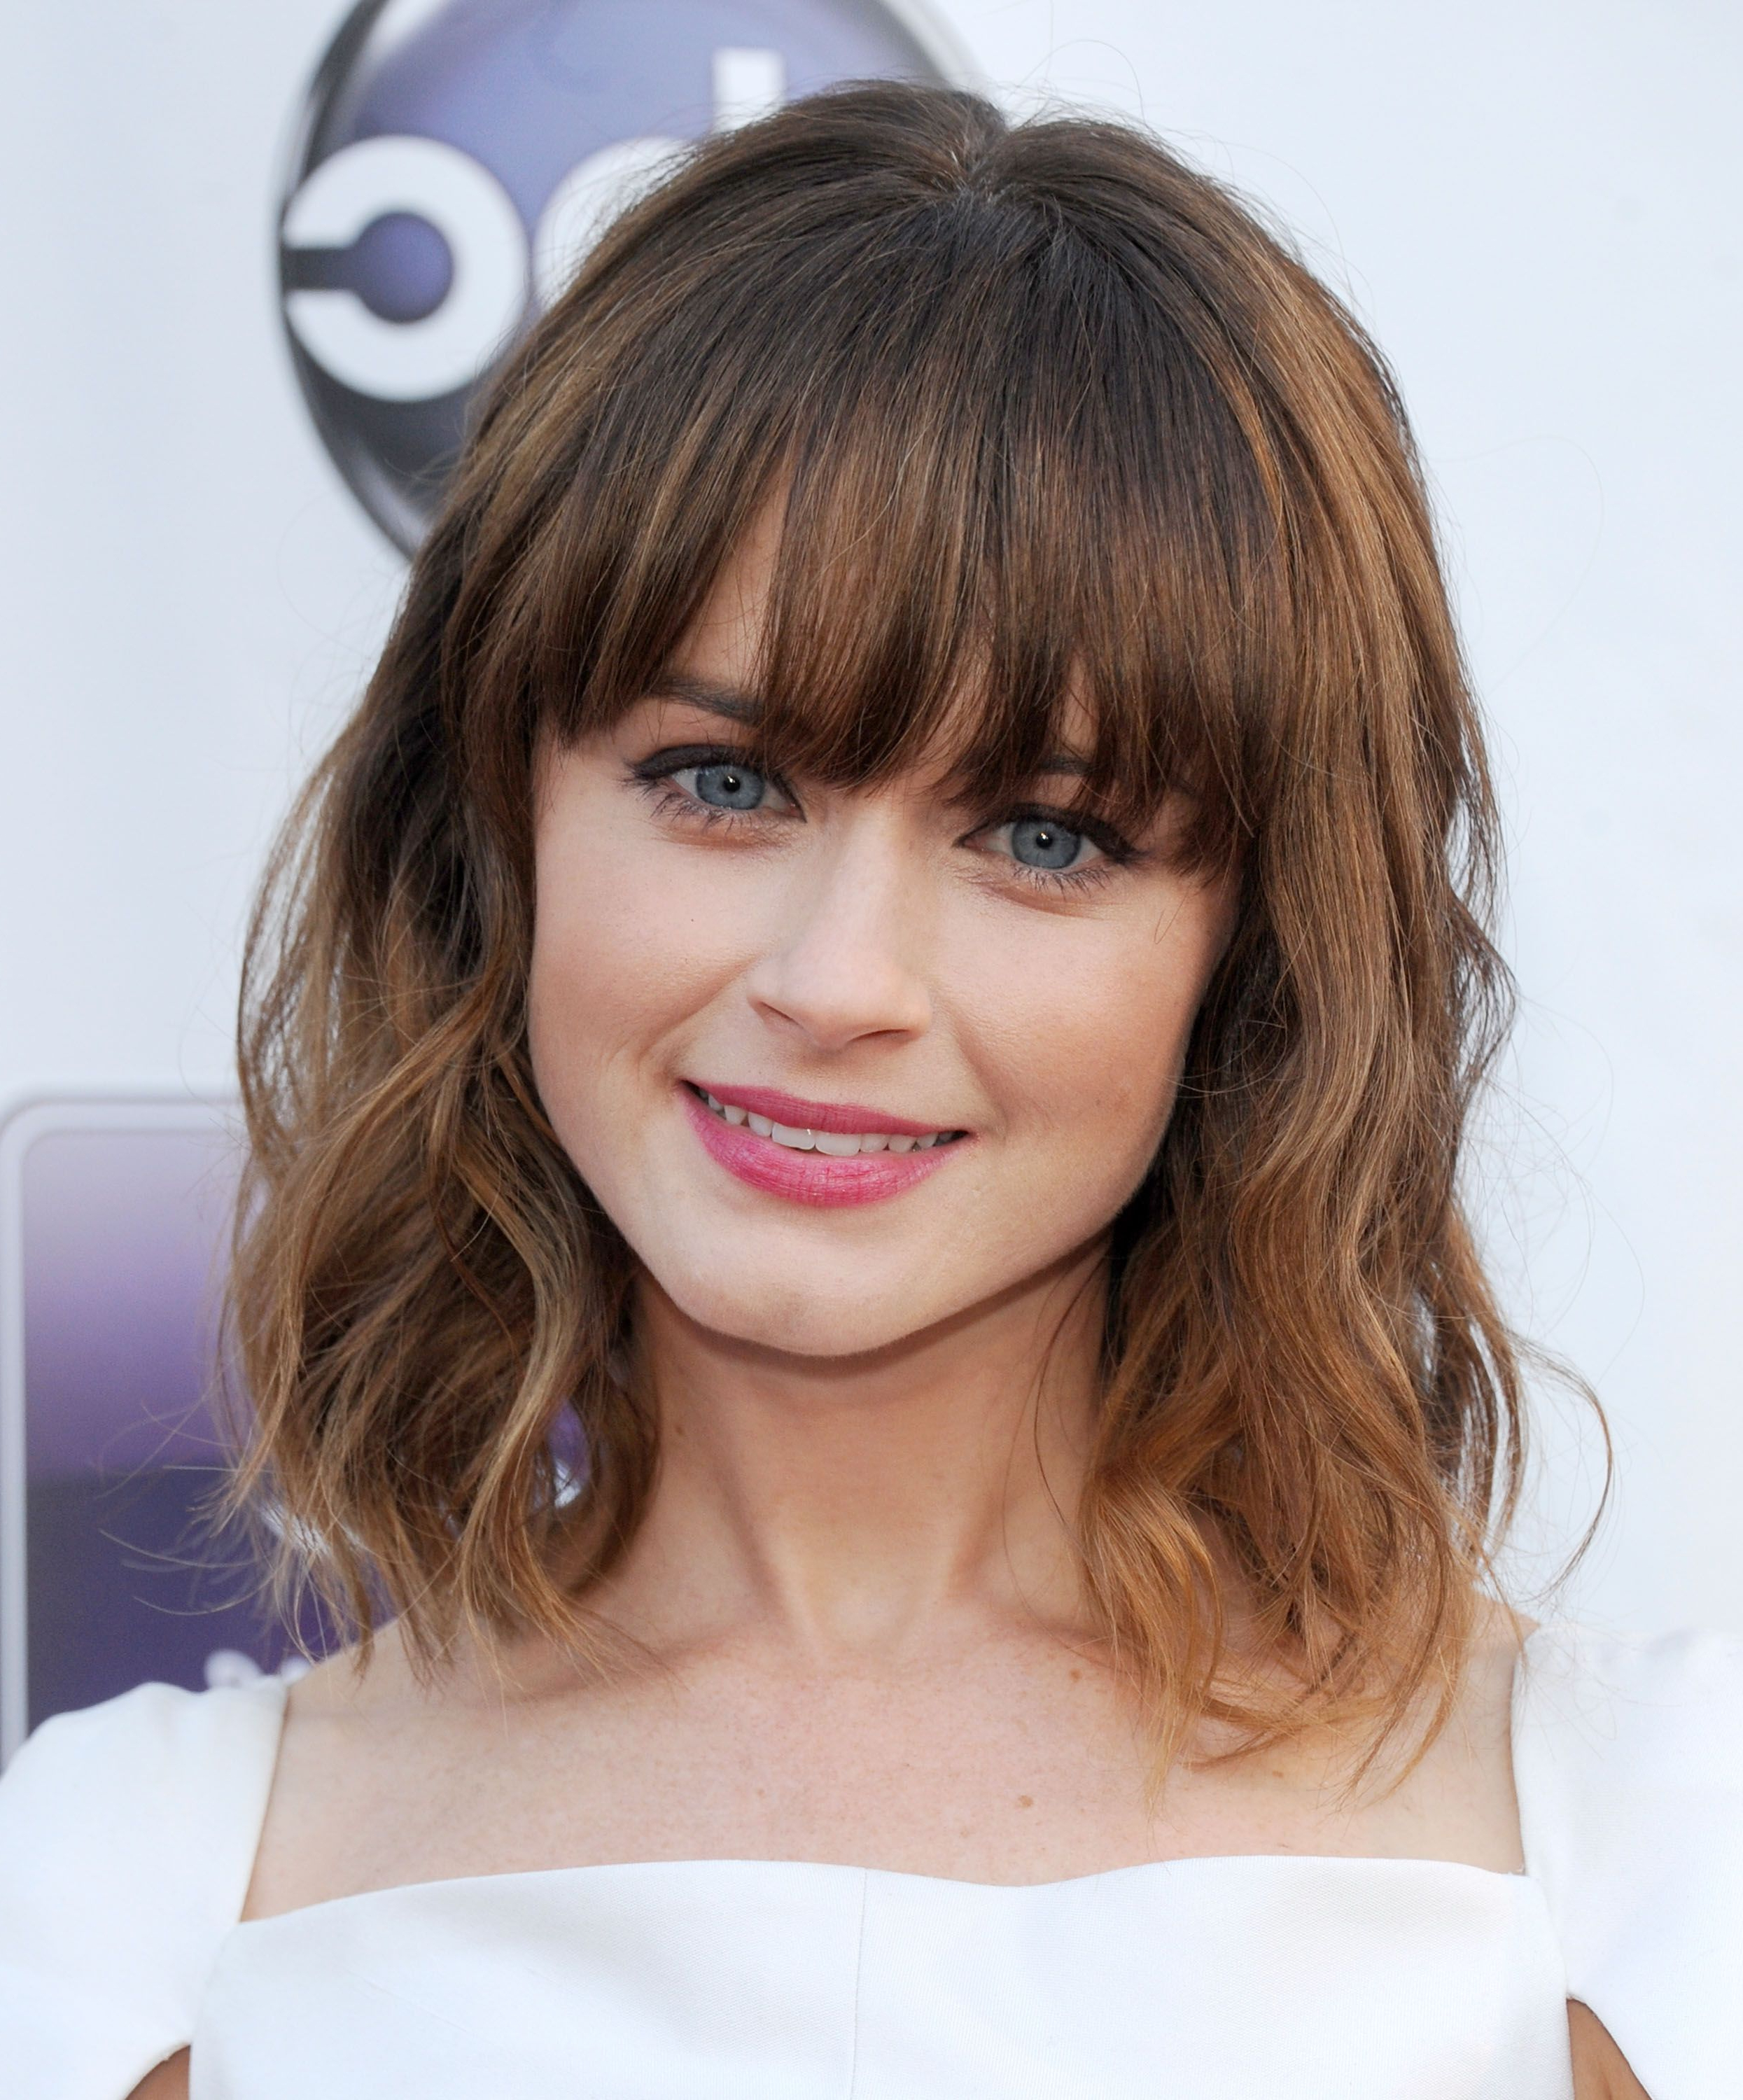 35 Best Hairstyles With Bangs – Photos Of Celebrity Haircuts With Bangs Intended For Short Haircuts For Women In Their 30S (View 22 of 25)